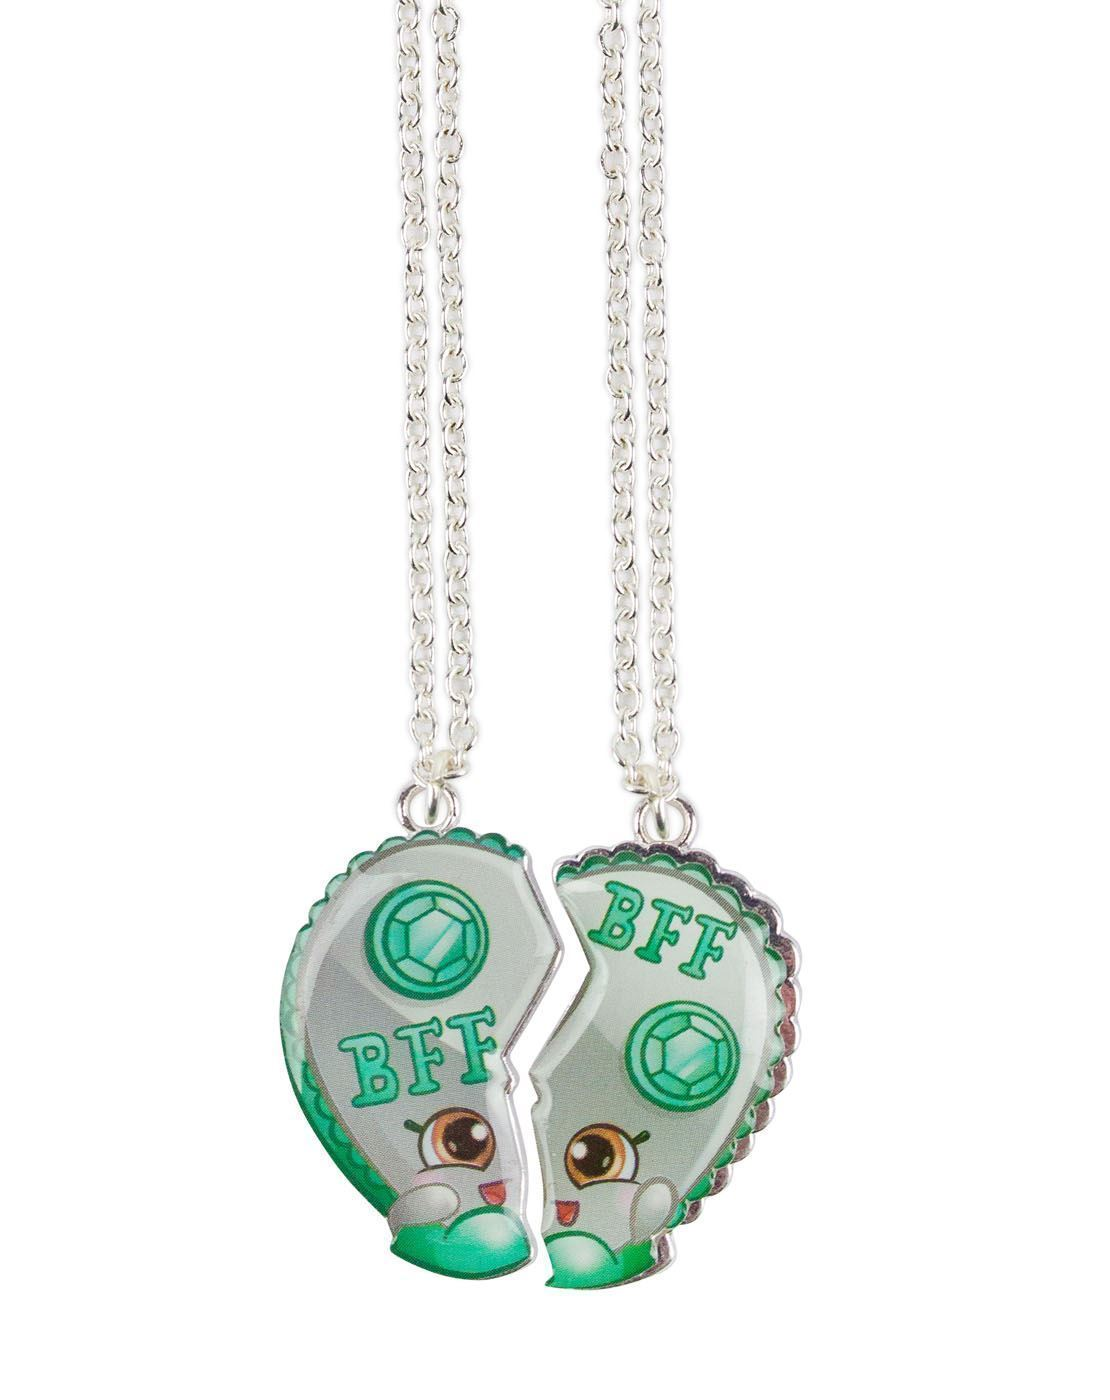 Shopkins Chelsea Charm Best Friend Necklaces